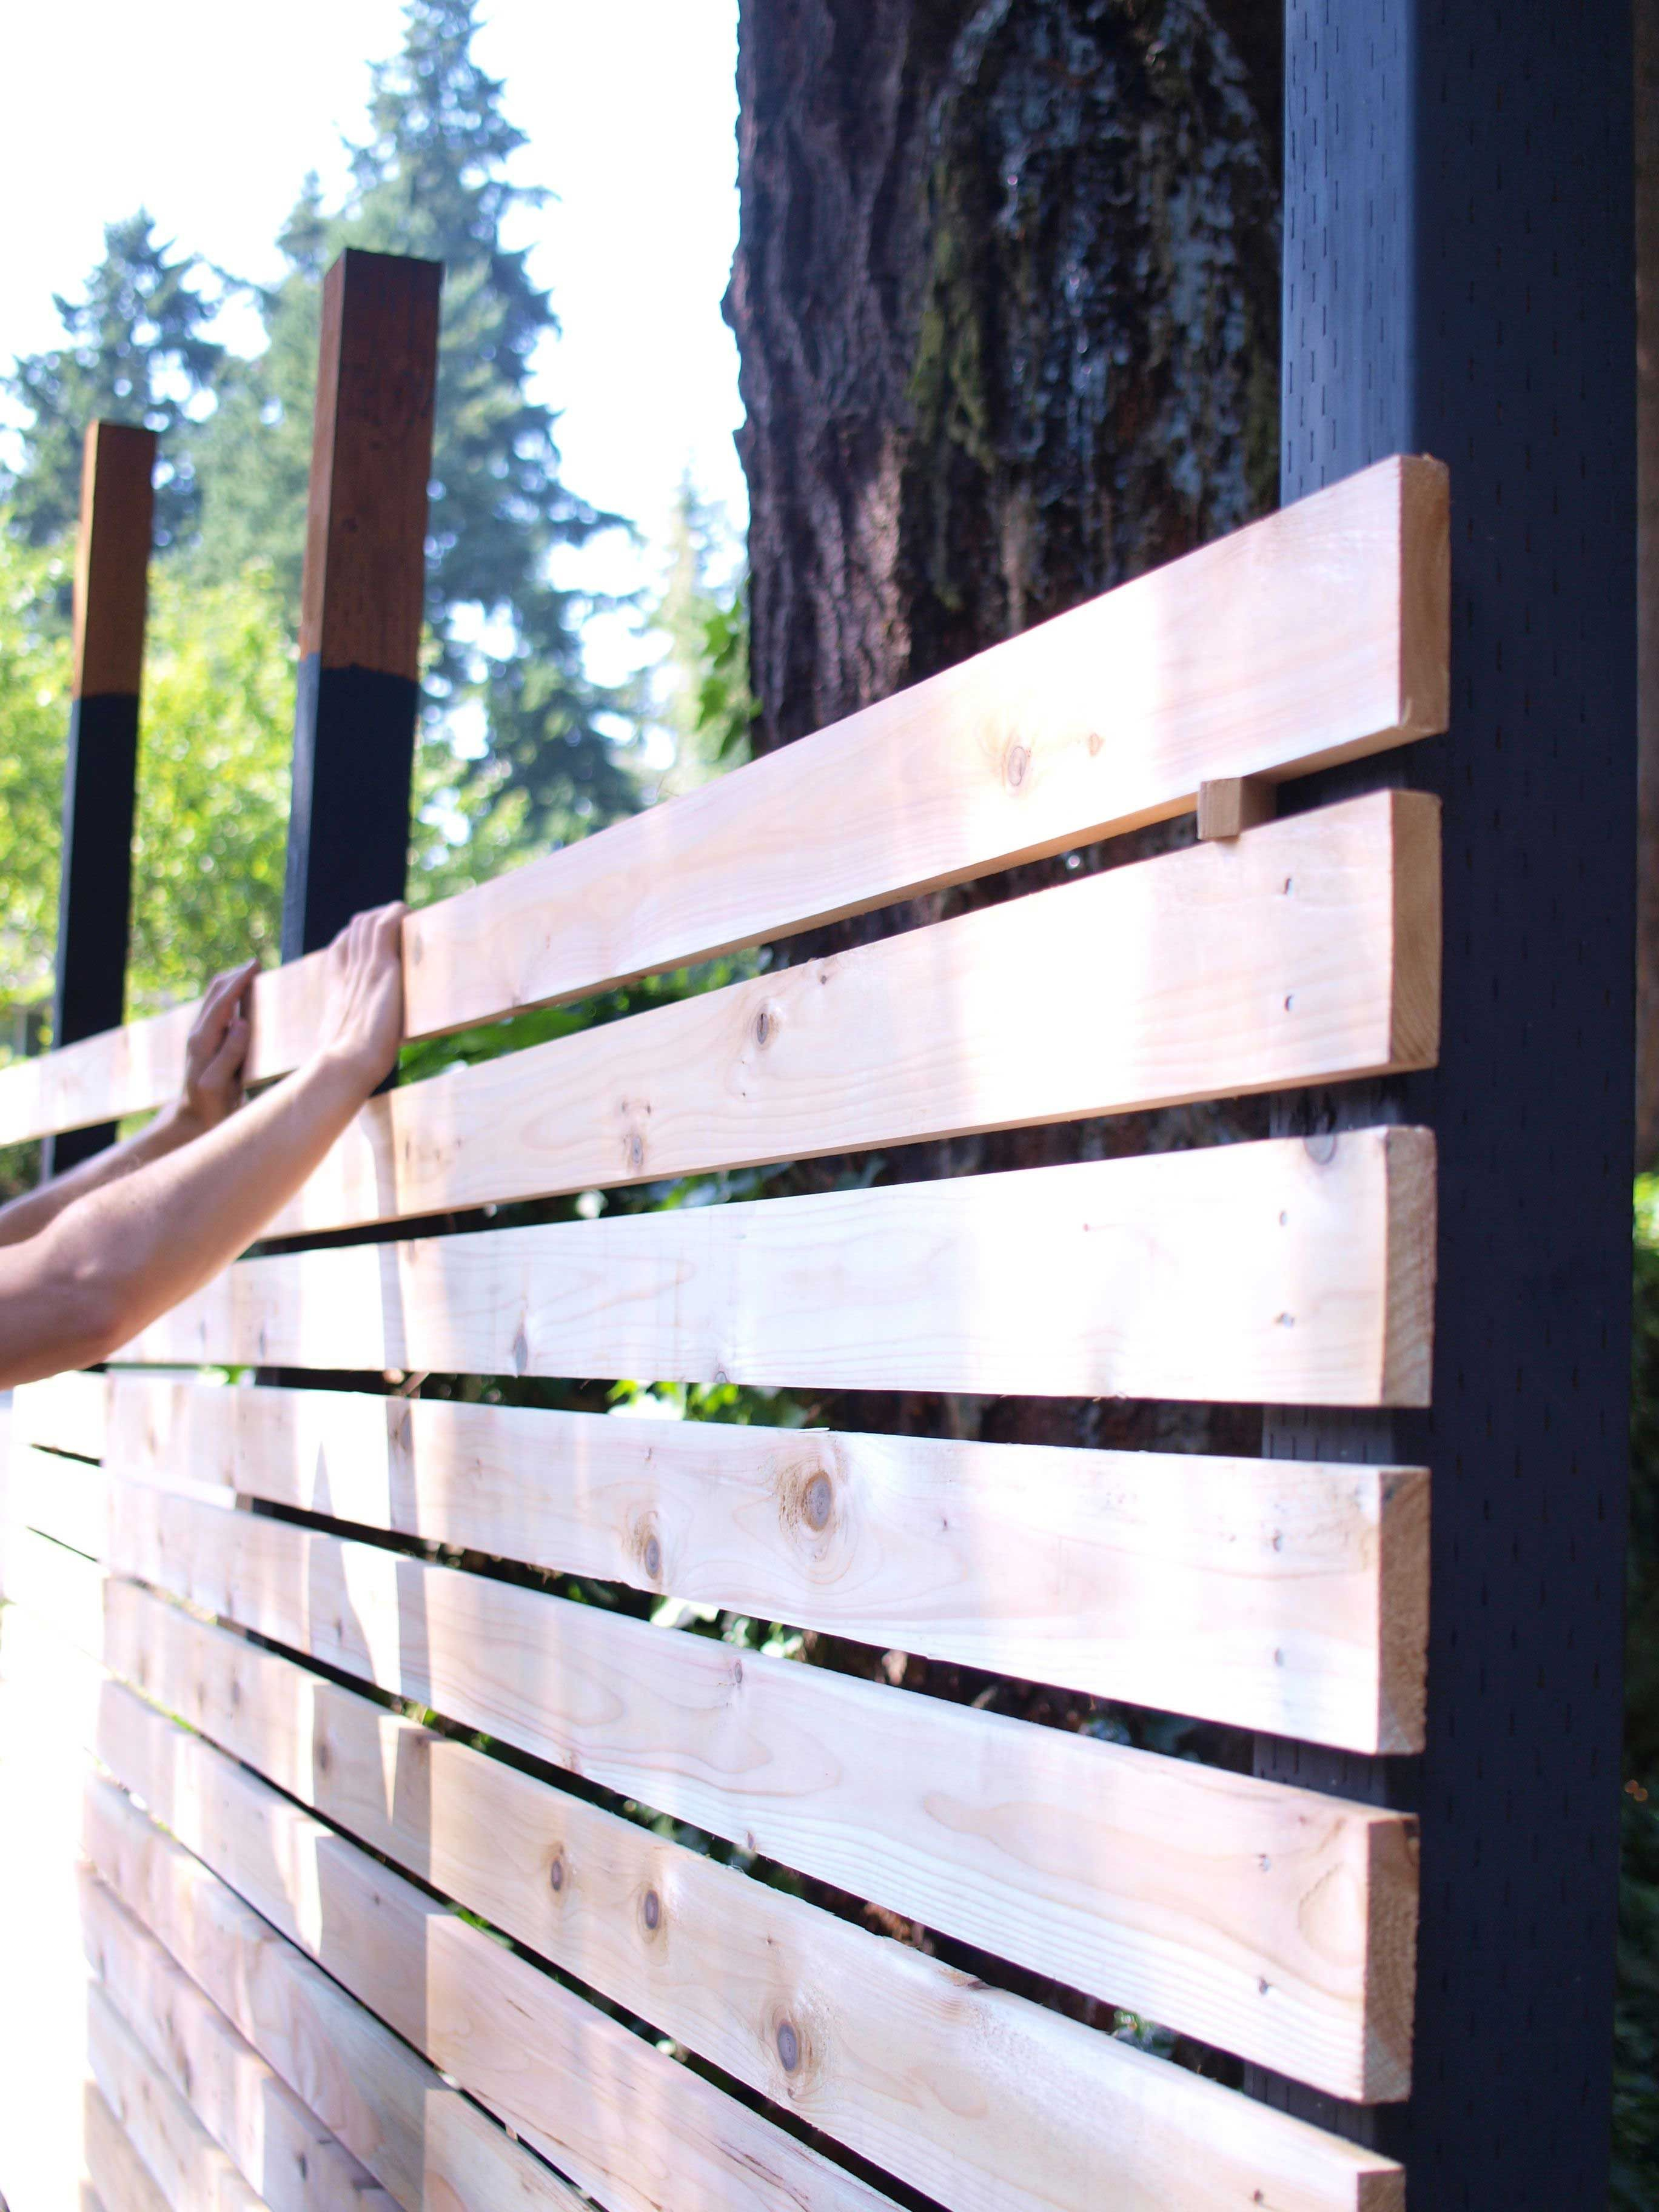 How To Build A Diy Backyard Fence Part Ii In 2019 Backyard Stuff pertaining to How To Build A Backyard Fence